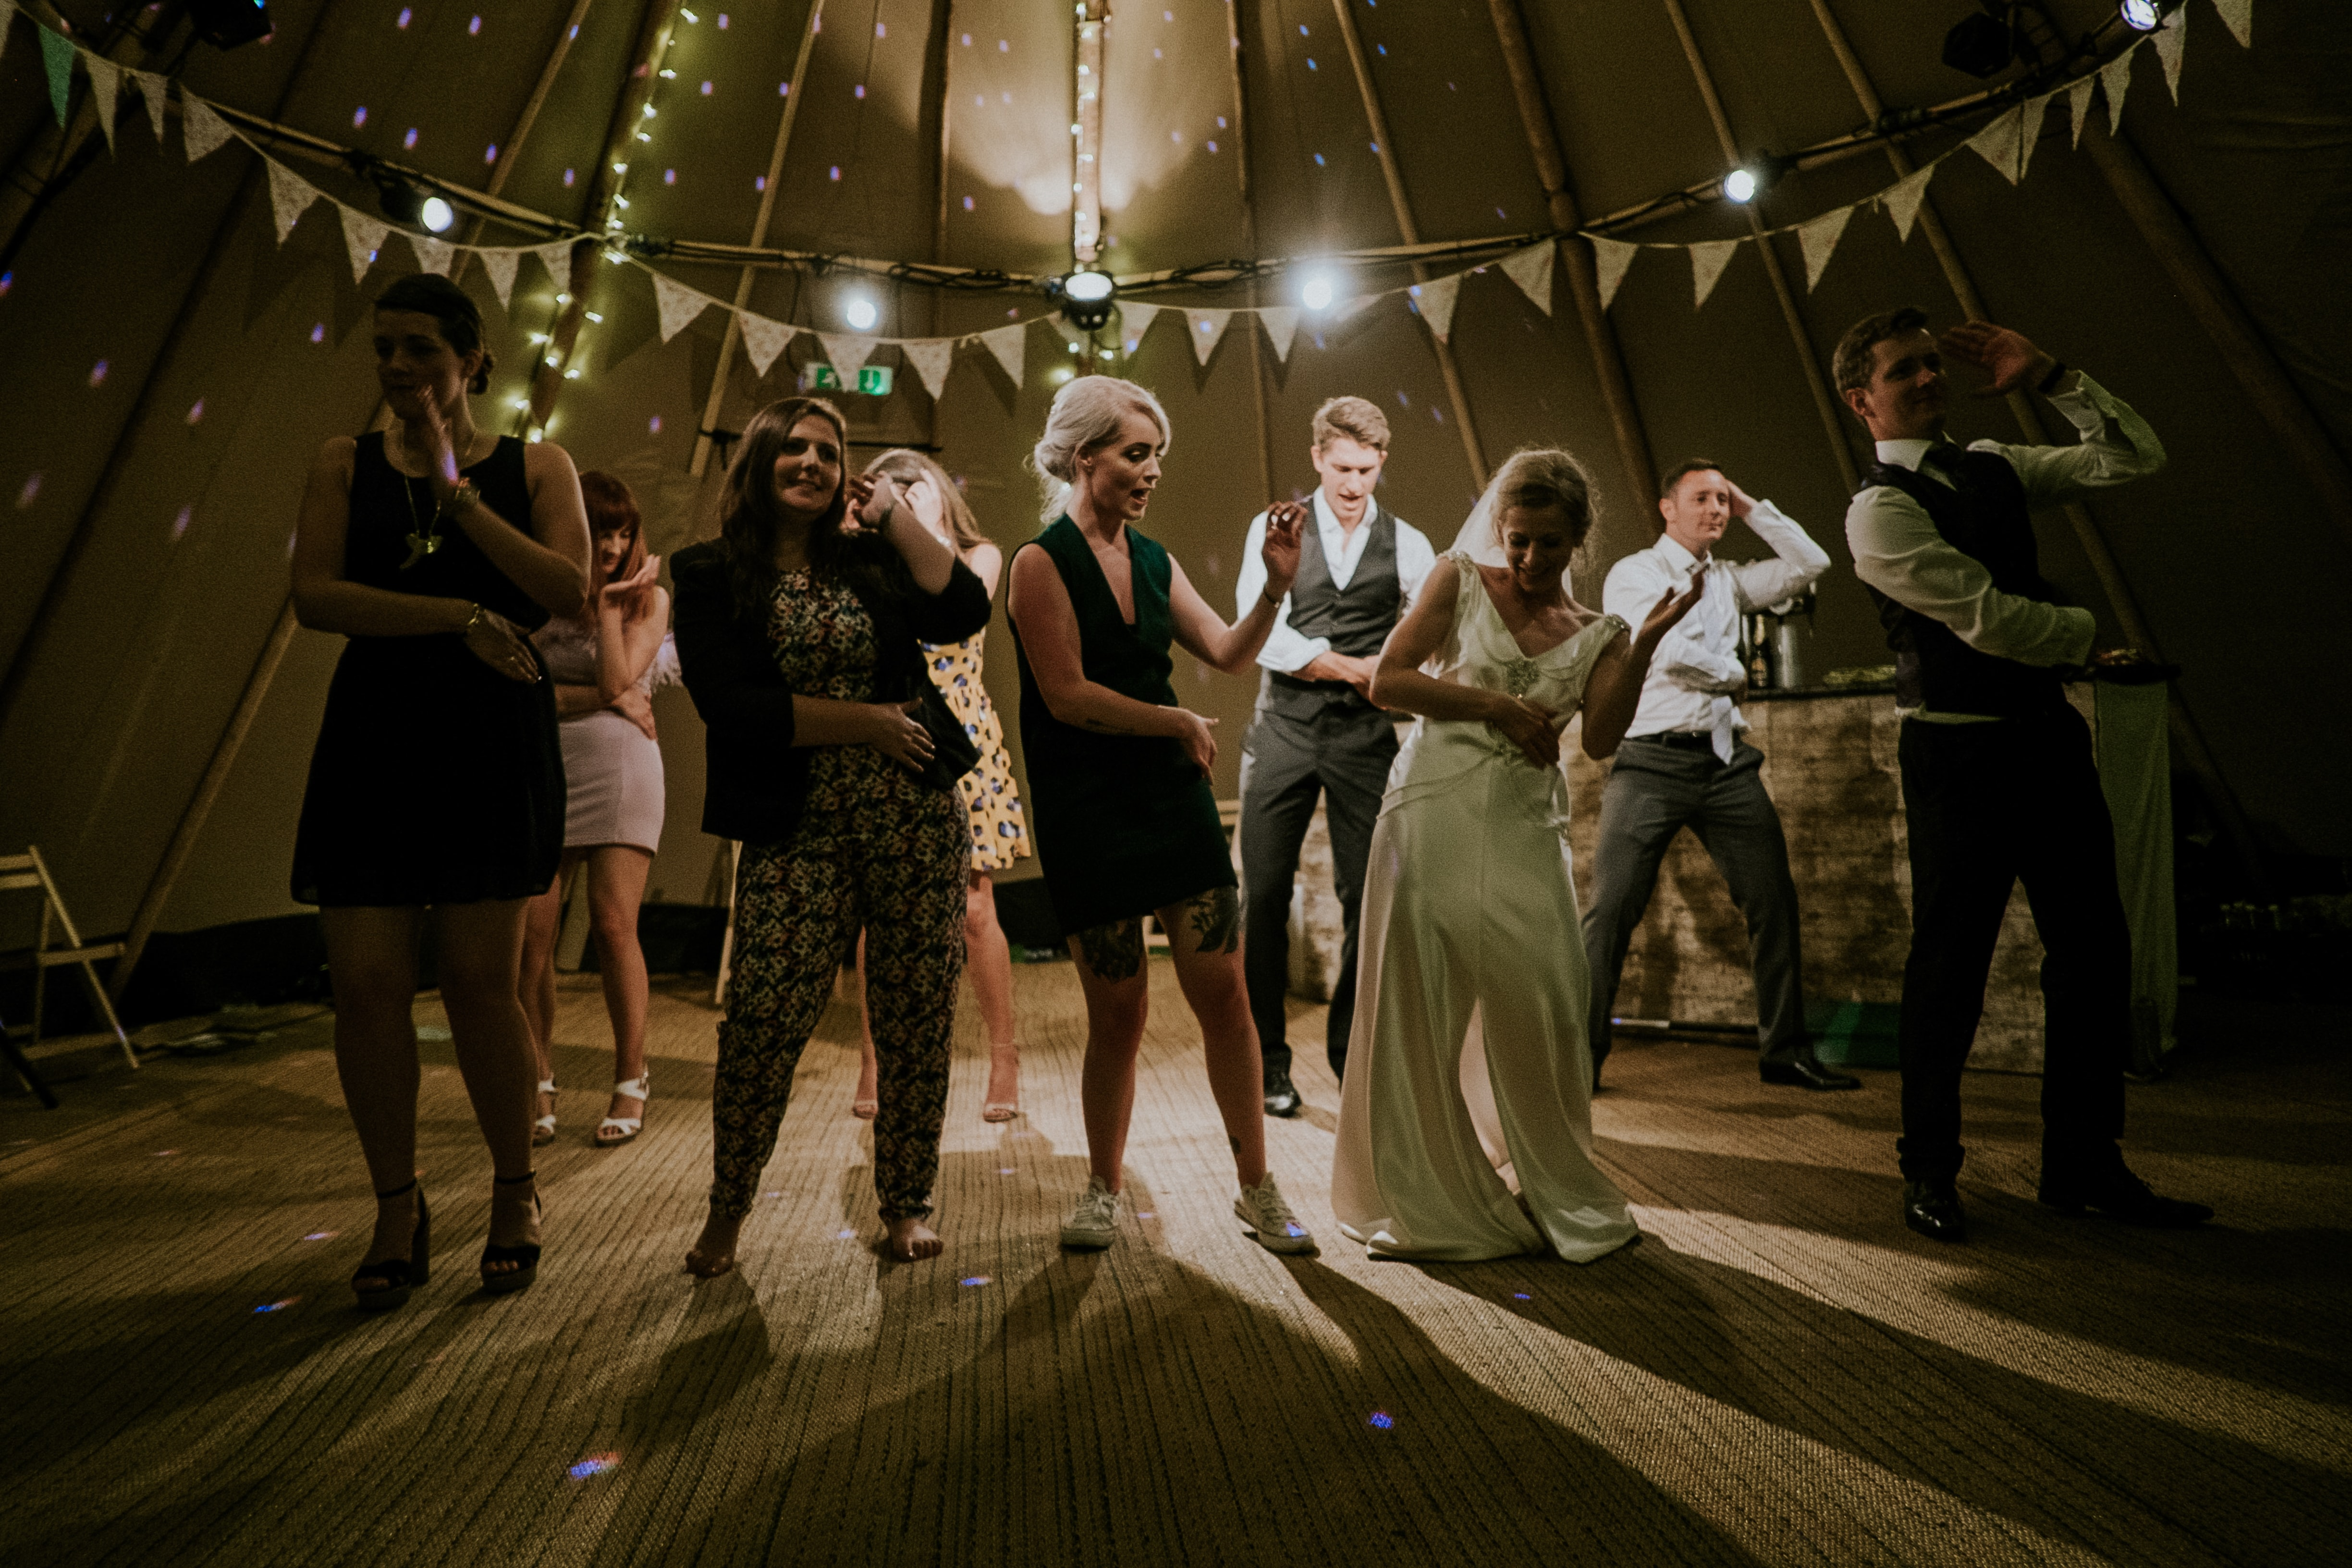 Group of wedding guests dance the macarena